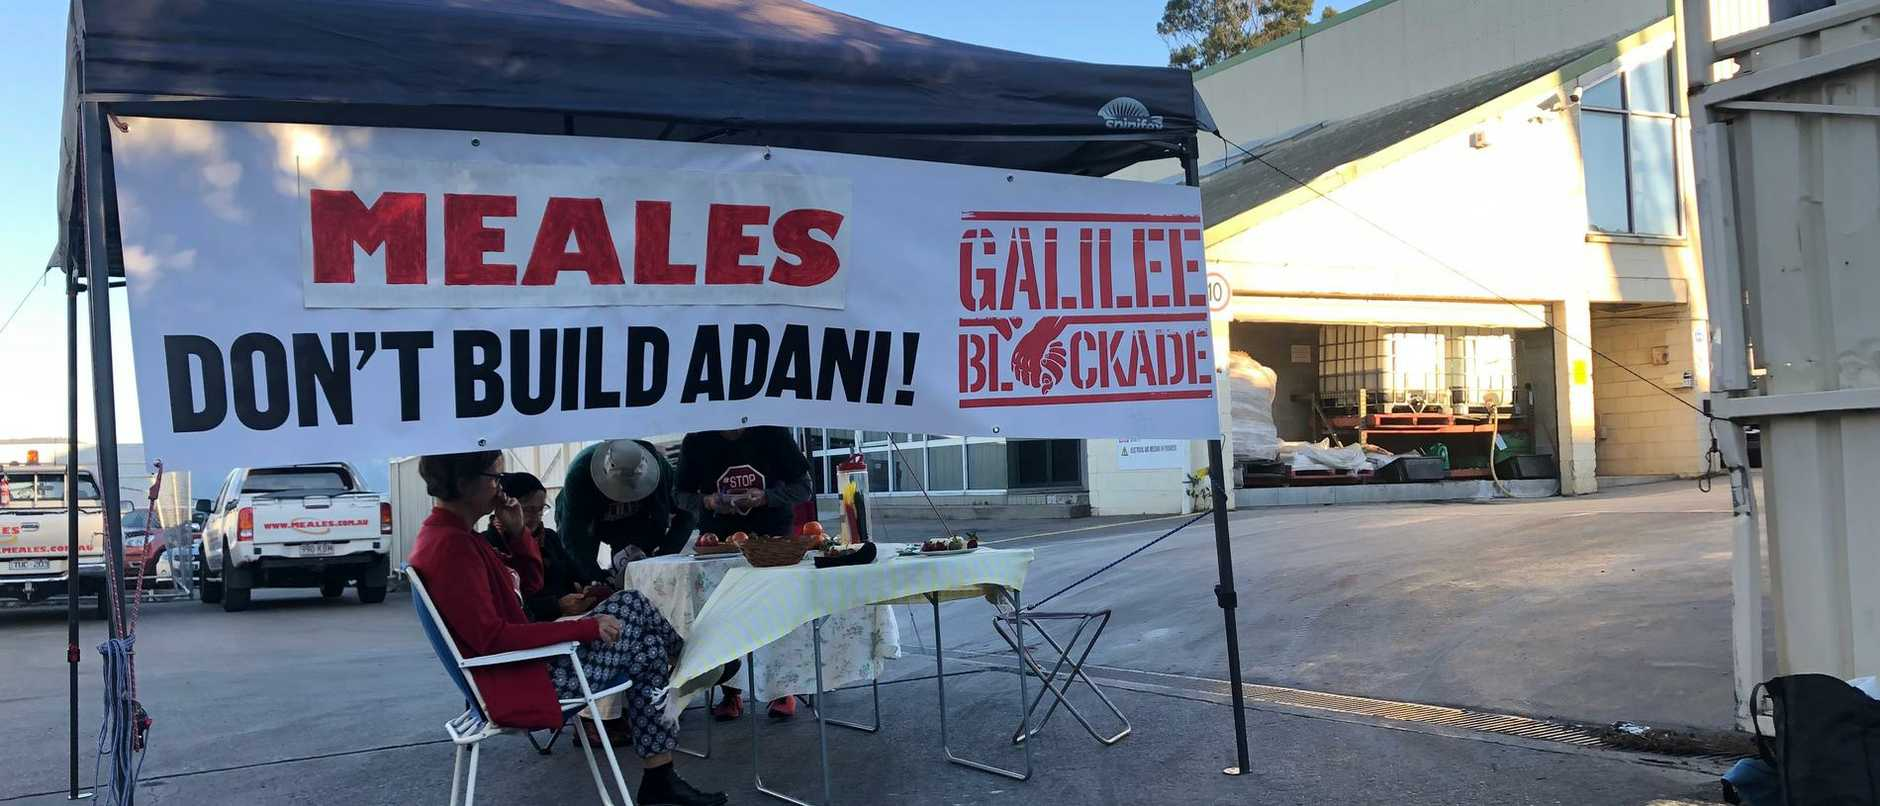 Activists have set up a blockade at Brisbane business Meales this morning